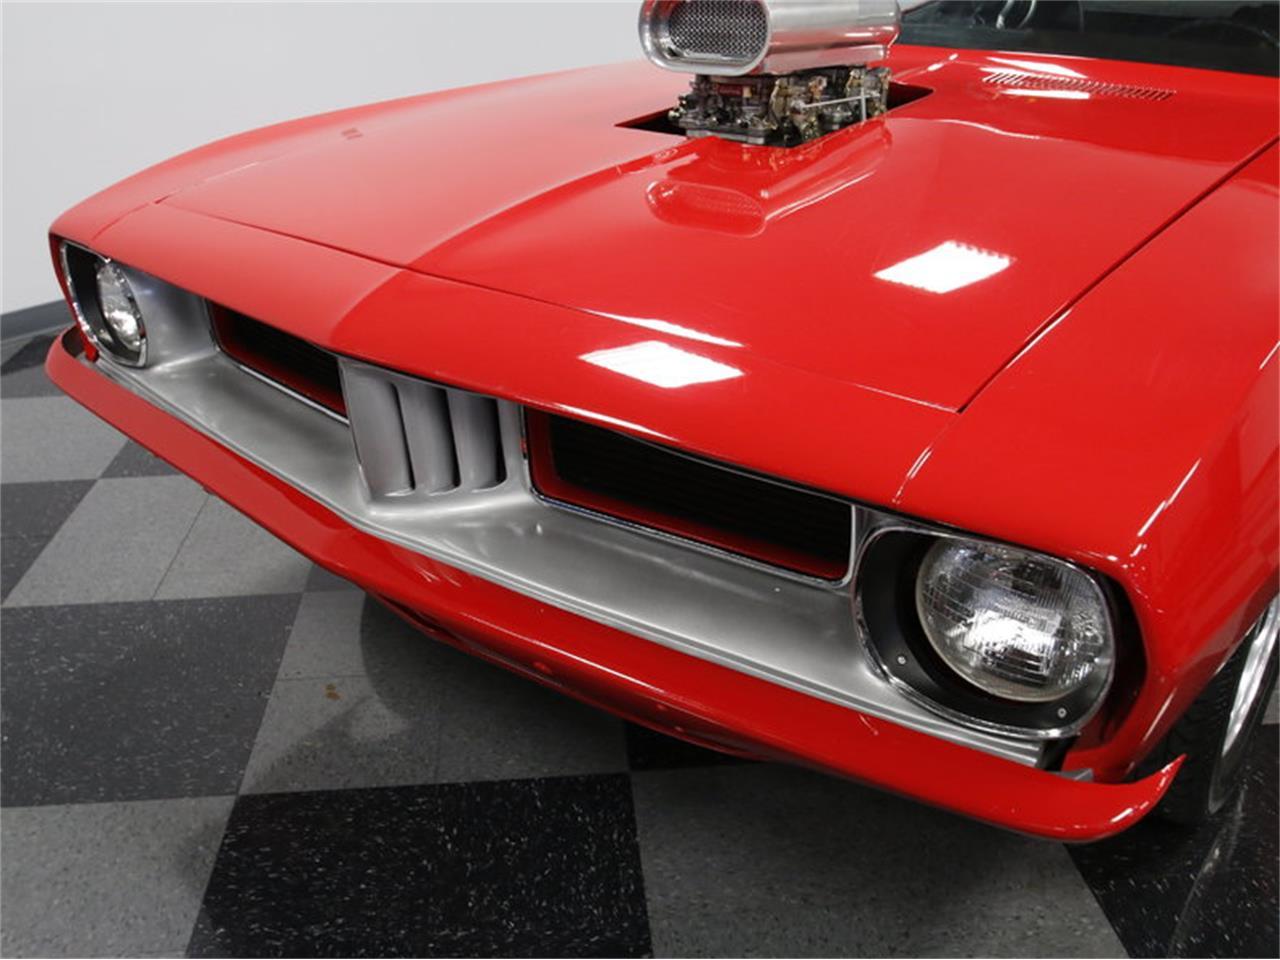 Large Picture of 1973 Plymouth Cuda located in Concord North Carolina - $33,995.00 Offered by Streetside Classics - Charlotte - MZGY